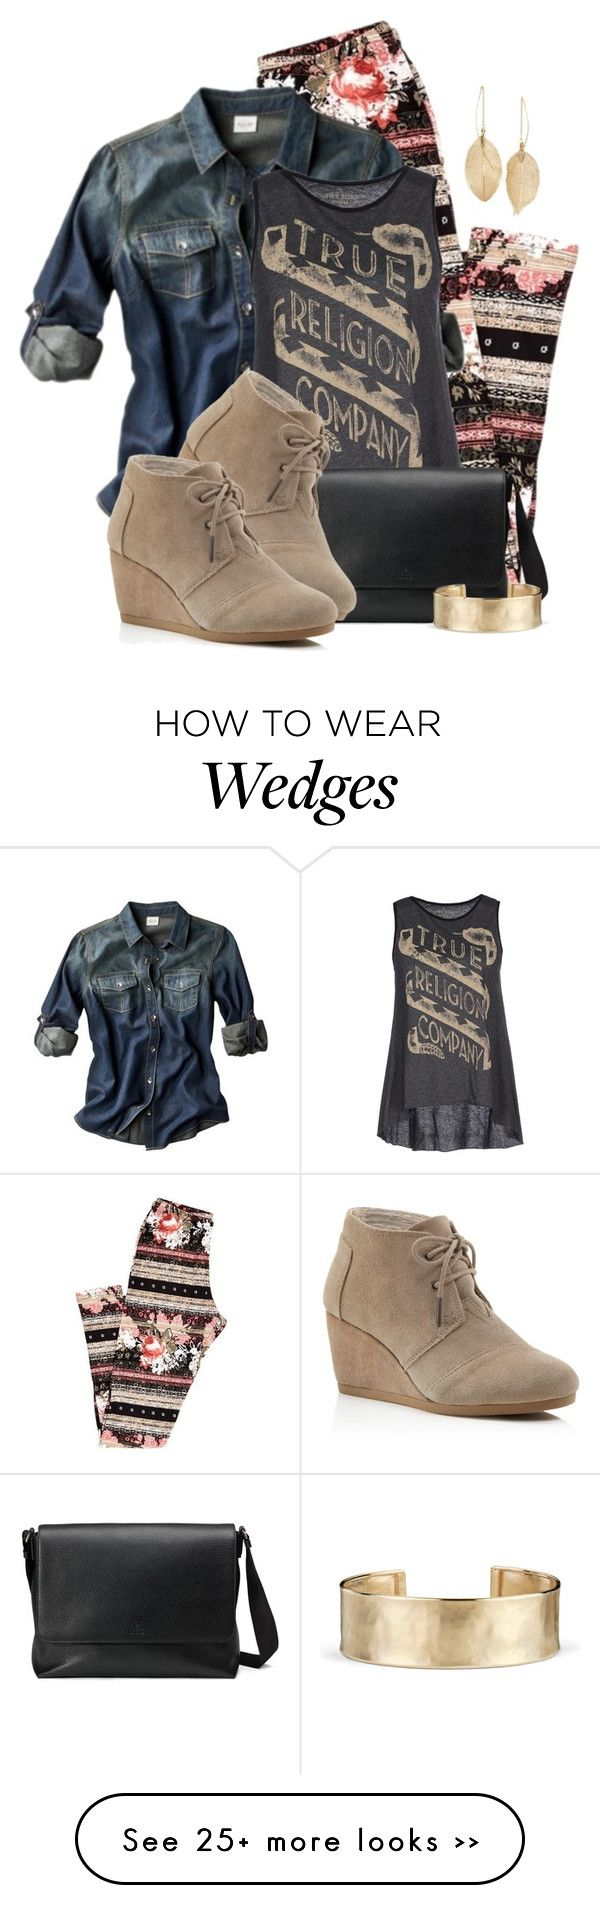 """""""TOMS Wedge Booties & Leggings"""" by colierollers on Polyvore featuring Mossimo, True Religion, Gucci, TOMS, Lulu*s and Blue Nile"""